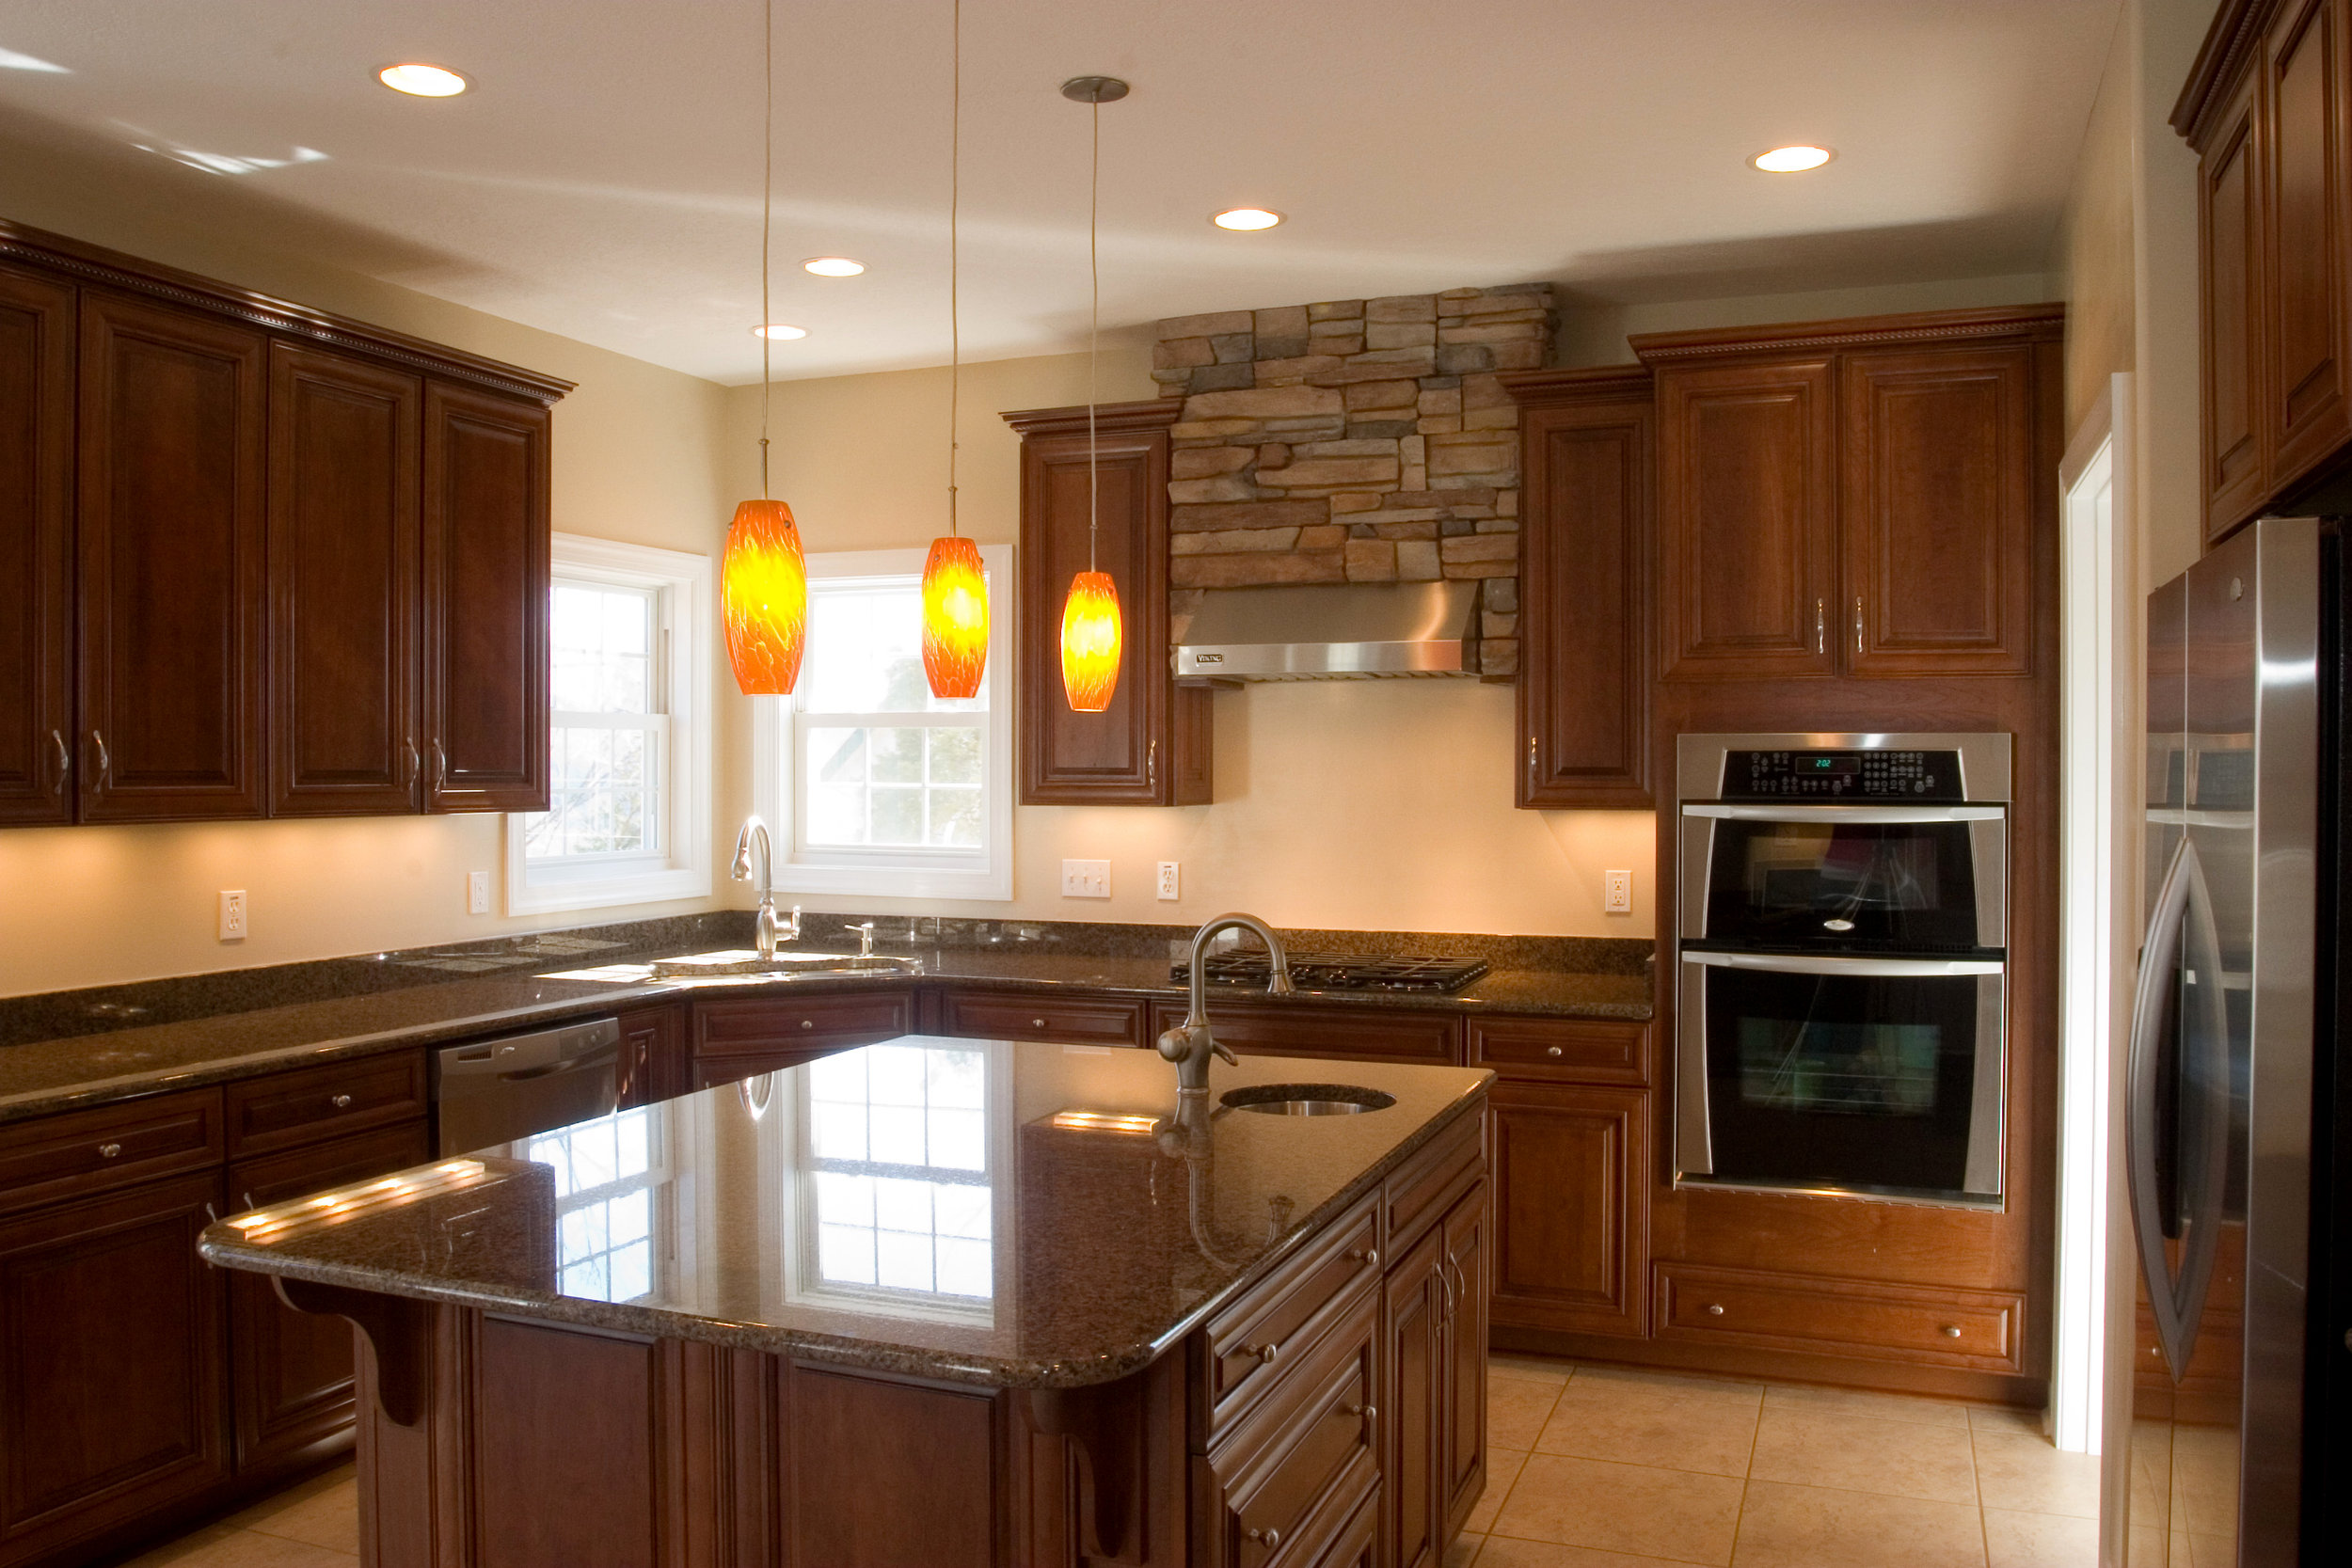 05 Mountain Side Drive Kitchen 2.jpg